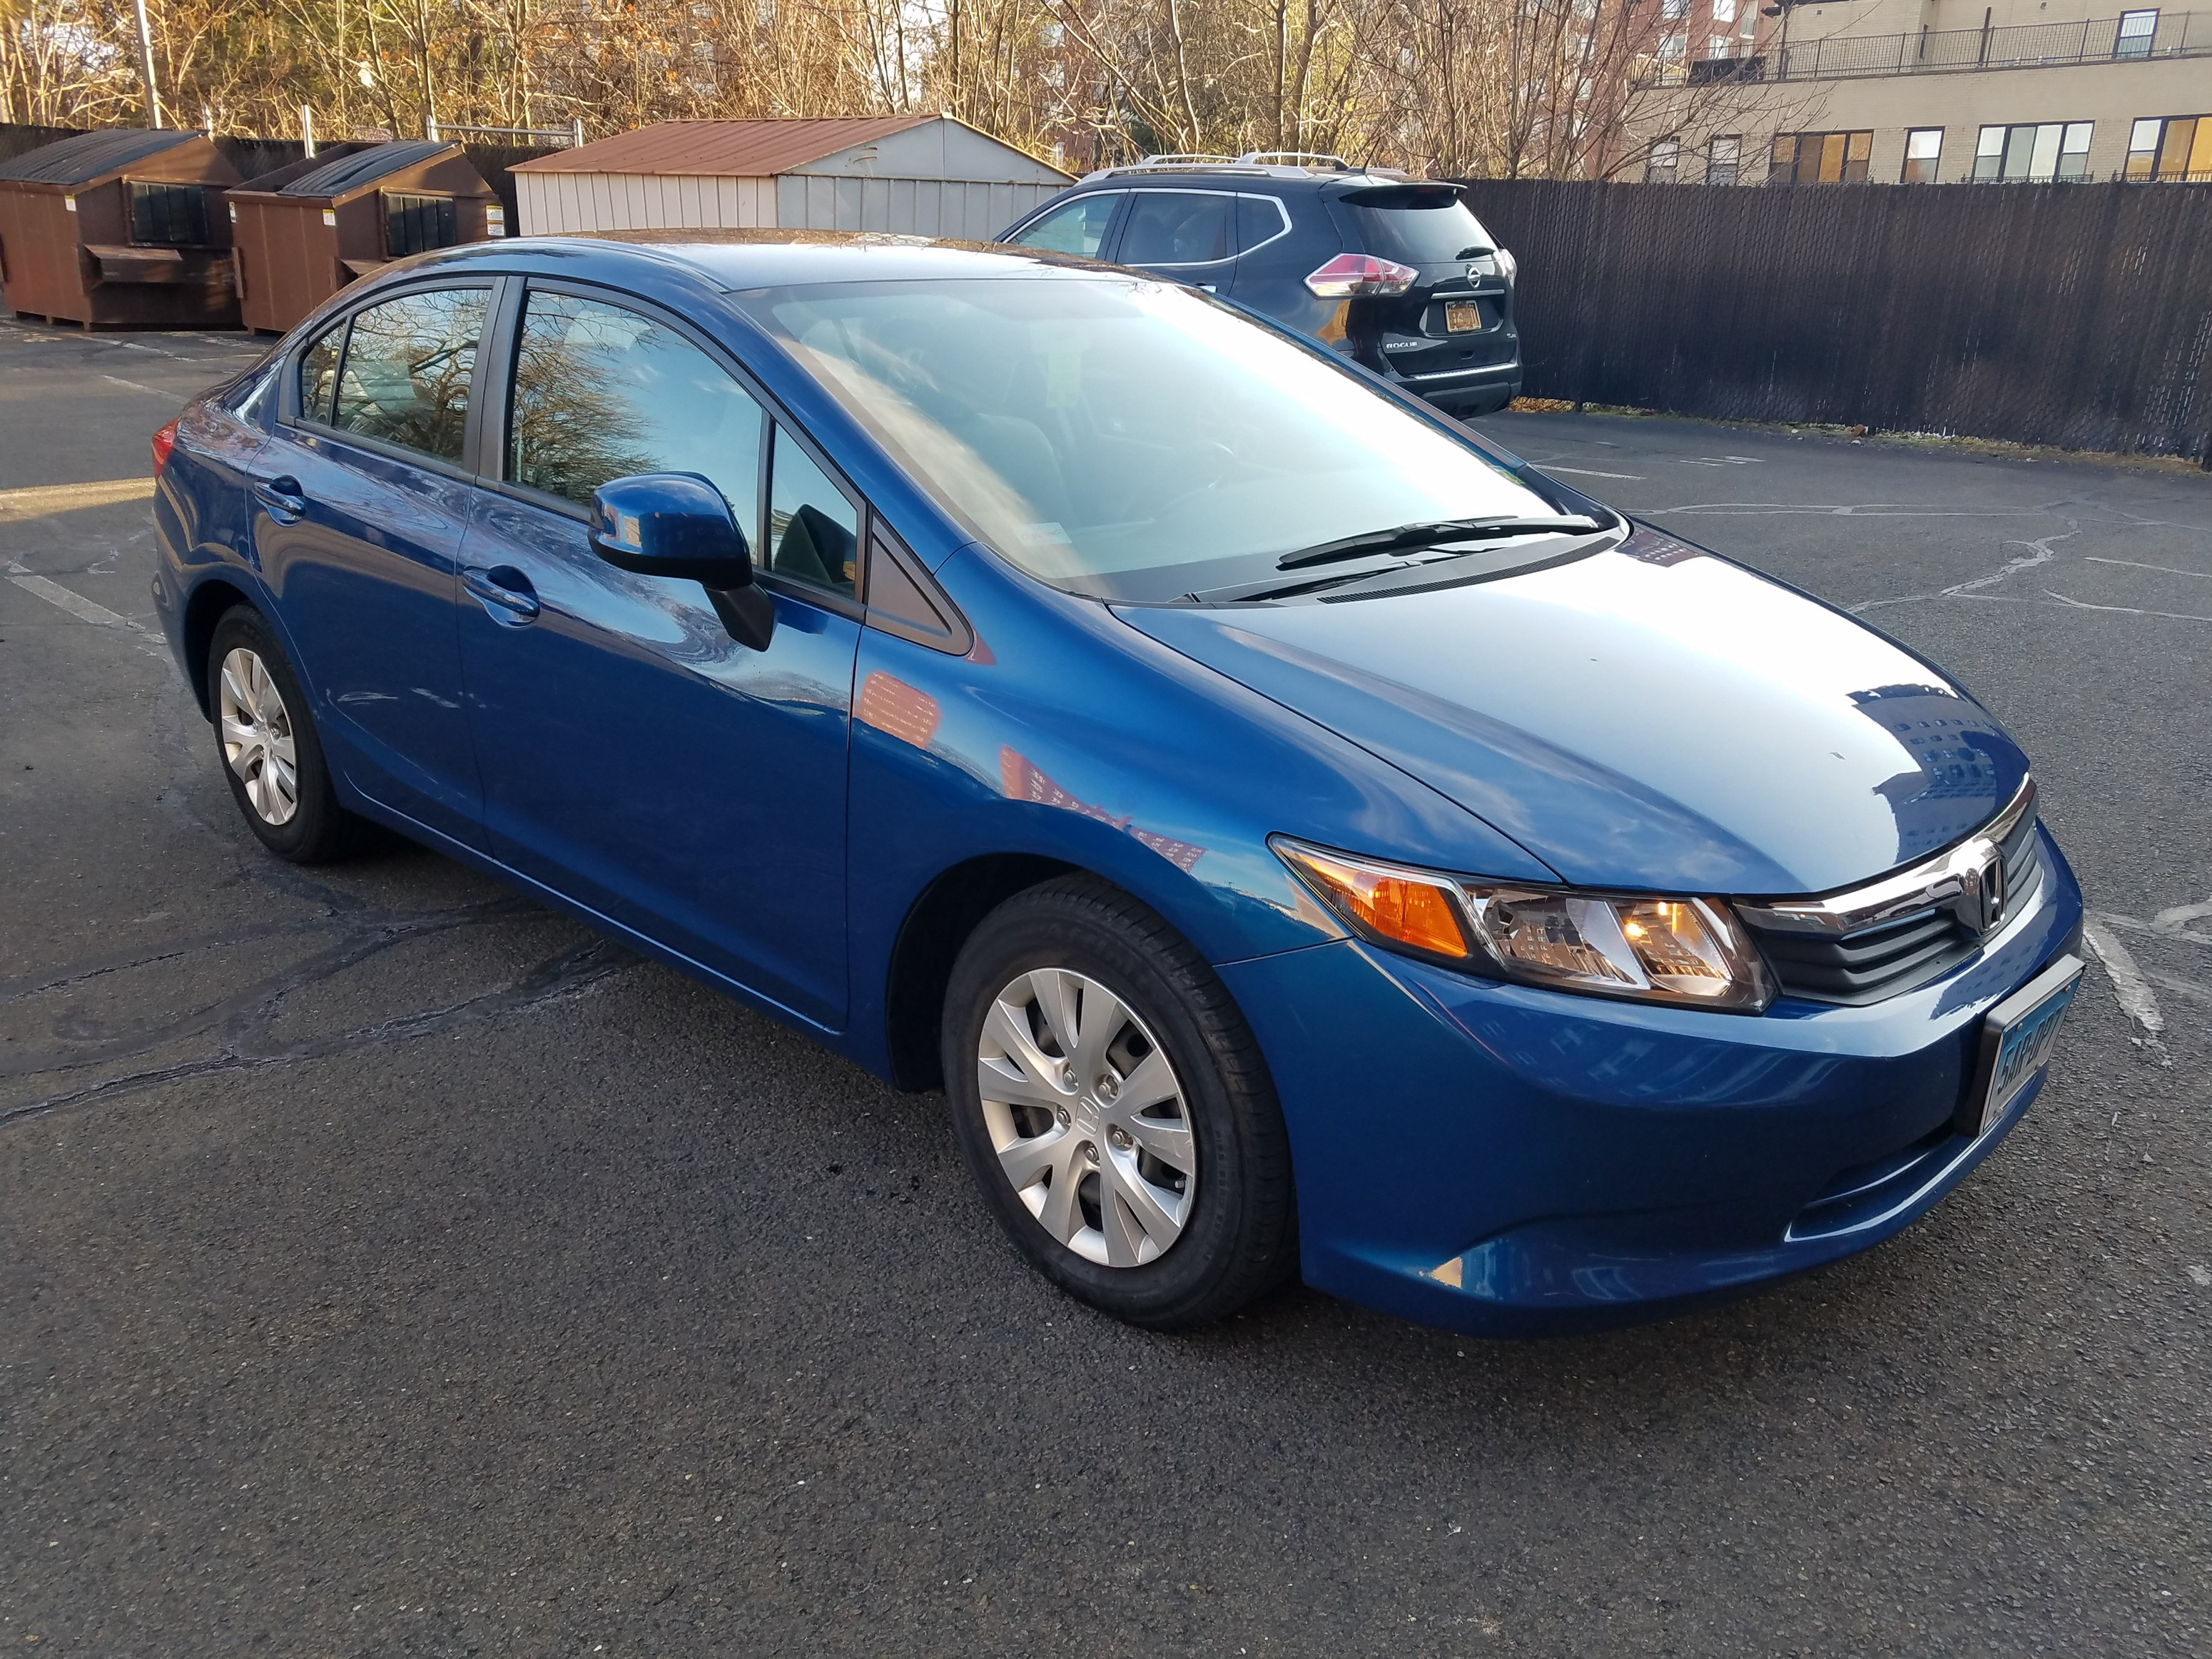 2012 Honda Civic LX Sedan For Sale Used Honda Civic Cars in